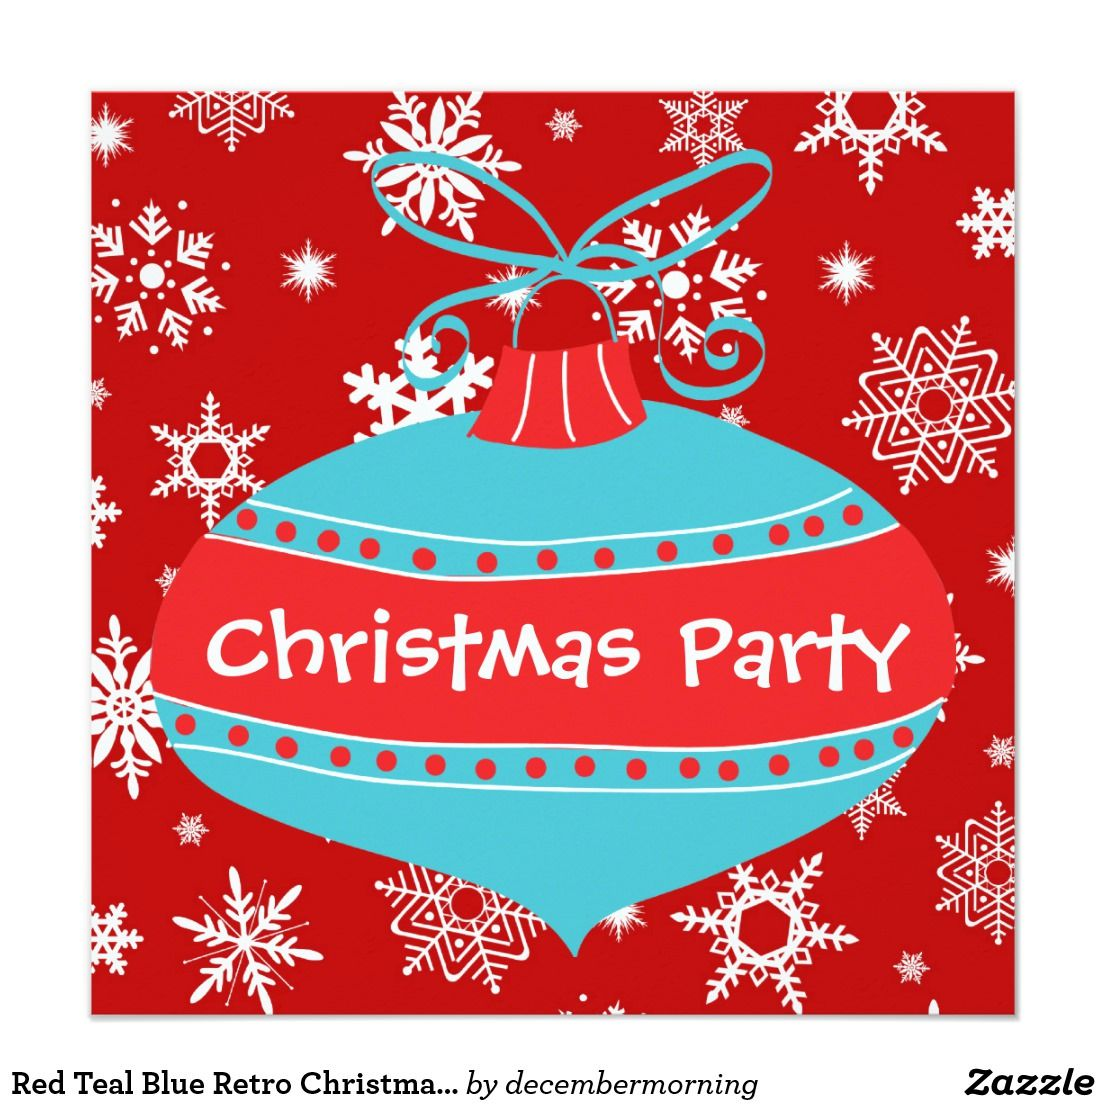 Red Teal Blue Retro Christmas Party | Christmas Party Invitations ...